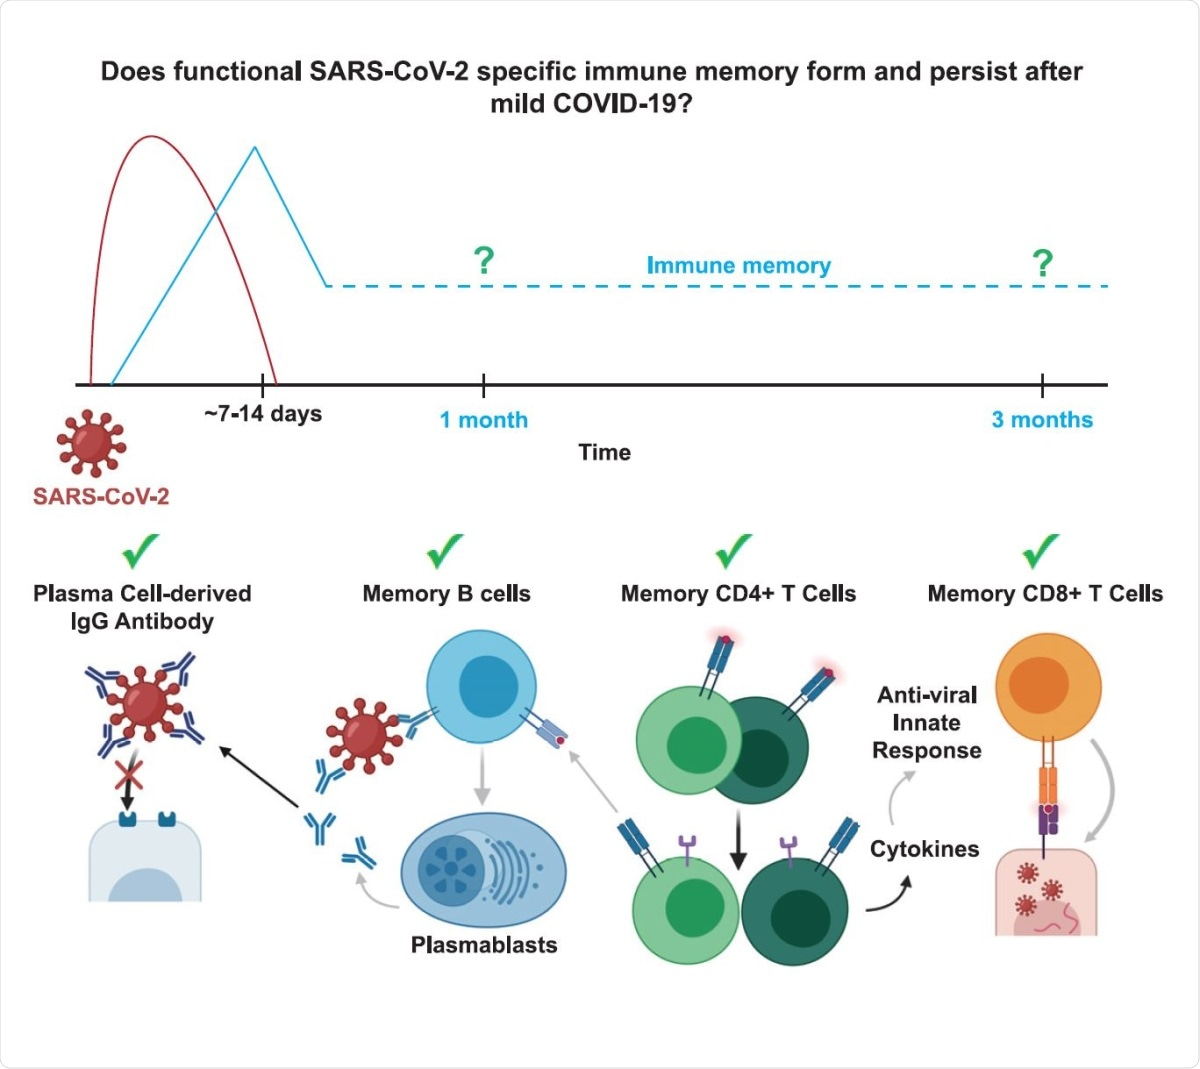 Study: Functional SARS-CoV-2-Specific Immune Memory Persists after Mild COVID-19. Image Credit: Graphical Abstract / Cell Journal